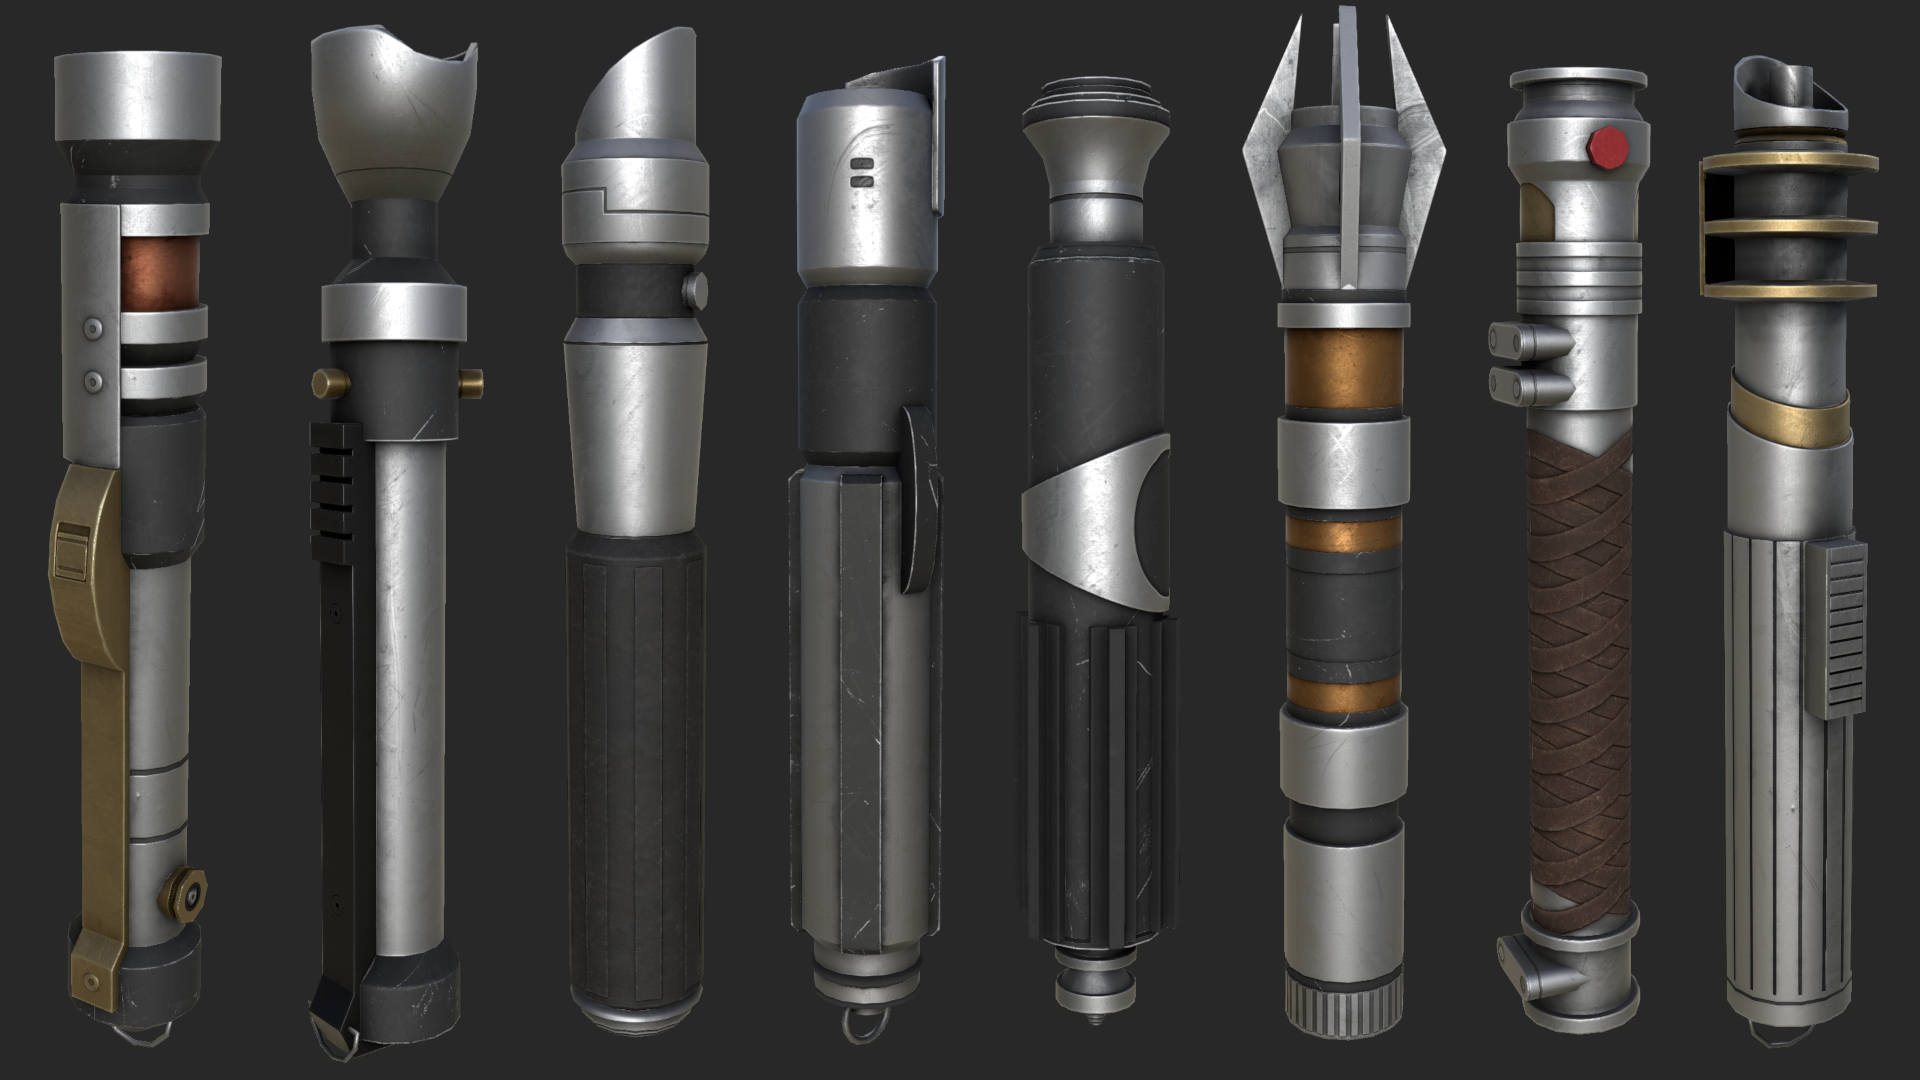 Lightsaber Hilt Collection Lightsabers Melee Jkhub Contribute to rbmy/gungi development by creating an account on github. lightsaber hilt collection